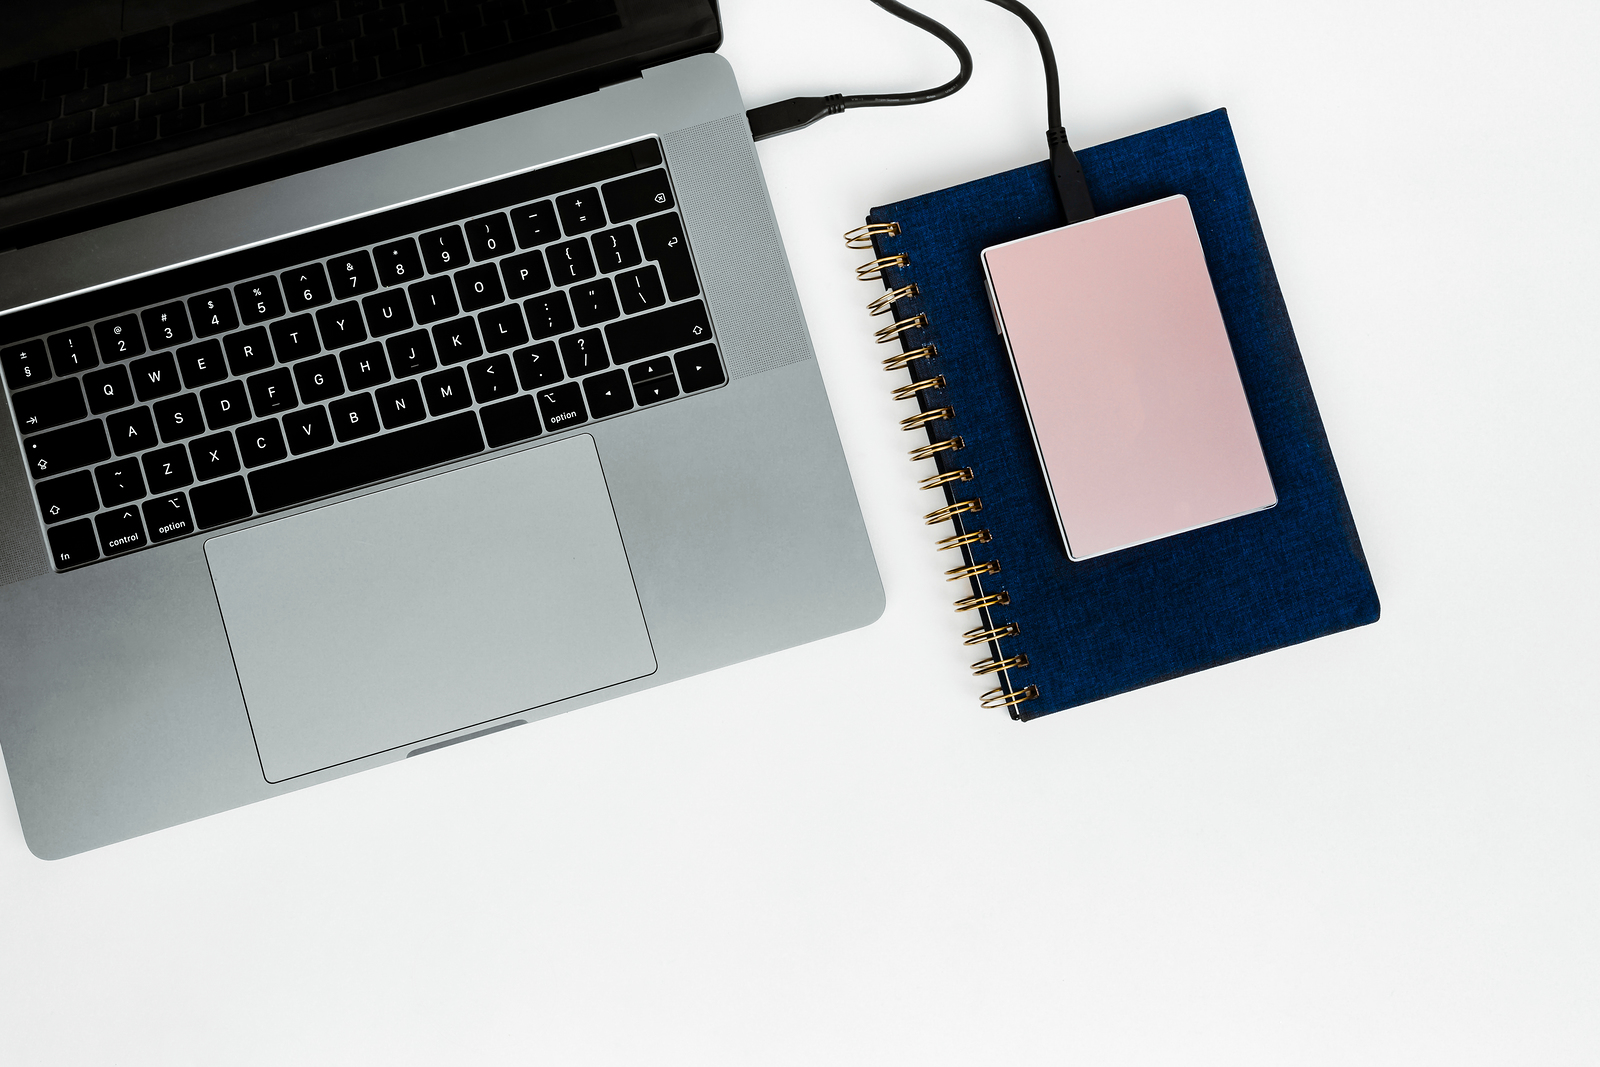 Things to Consider When Buying an External Hard Disk